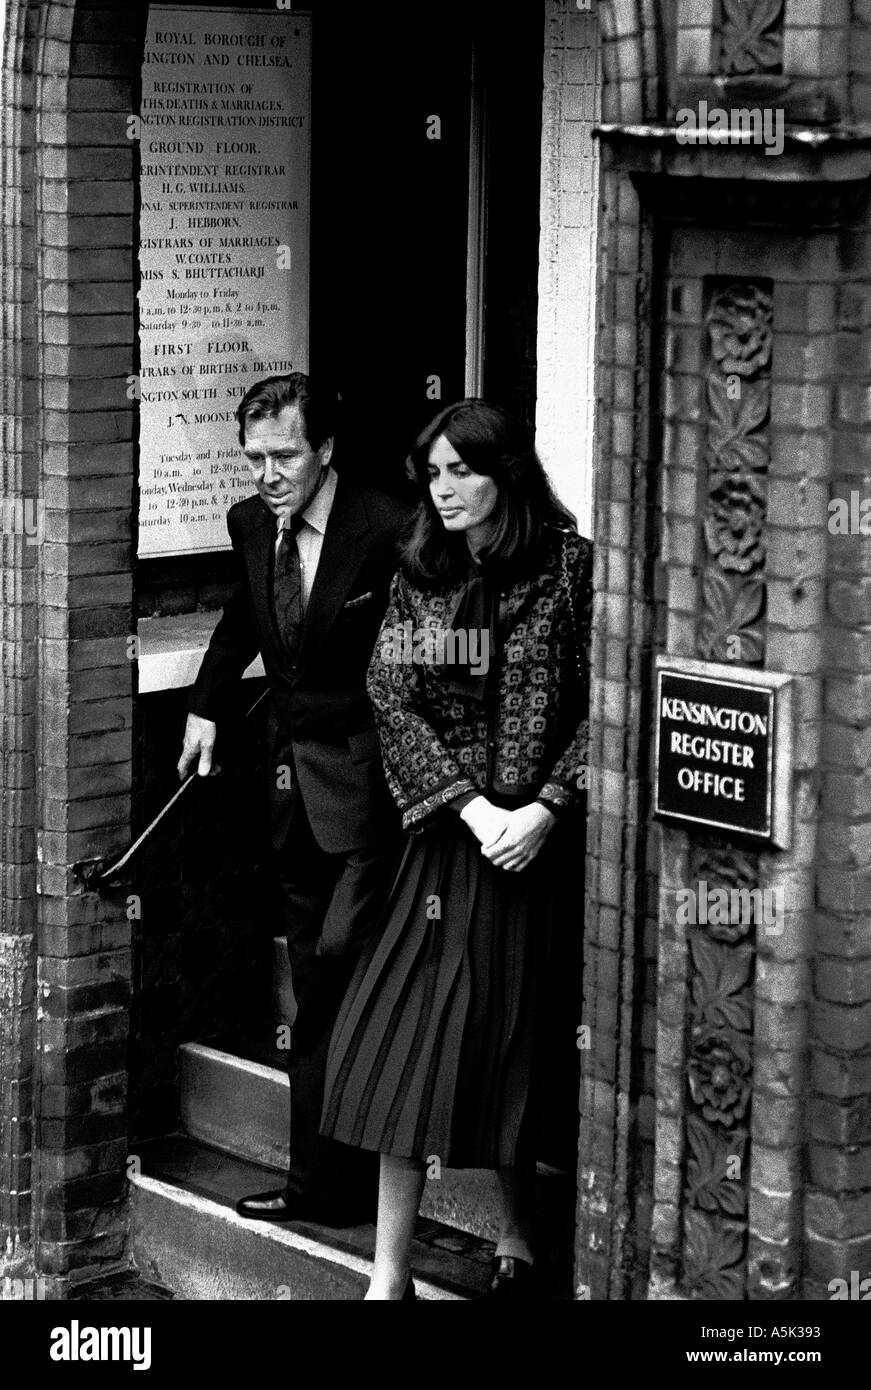 Snowdon Photos Of Margaret >> LORD SNOWDON AND LUCY LINDSAY HOGG LEAVING KENSINGTON REGISTER OFFICE Stock Photo: 2093970 - Alamy